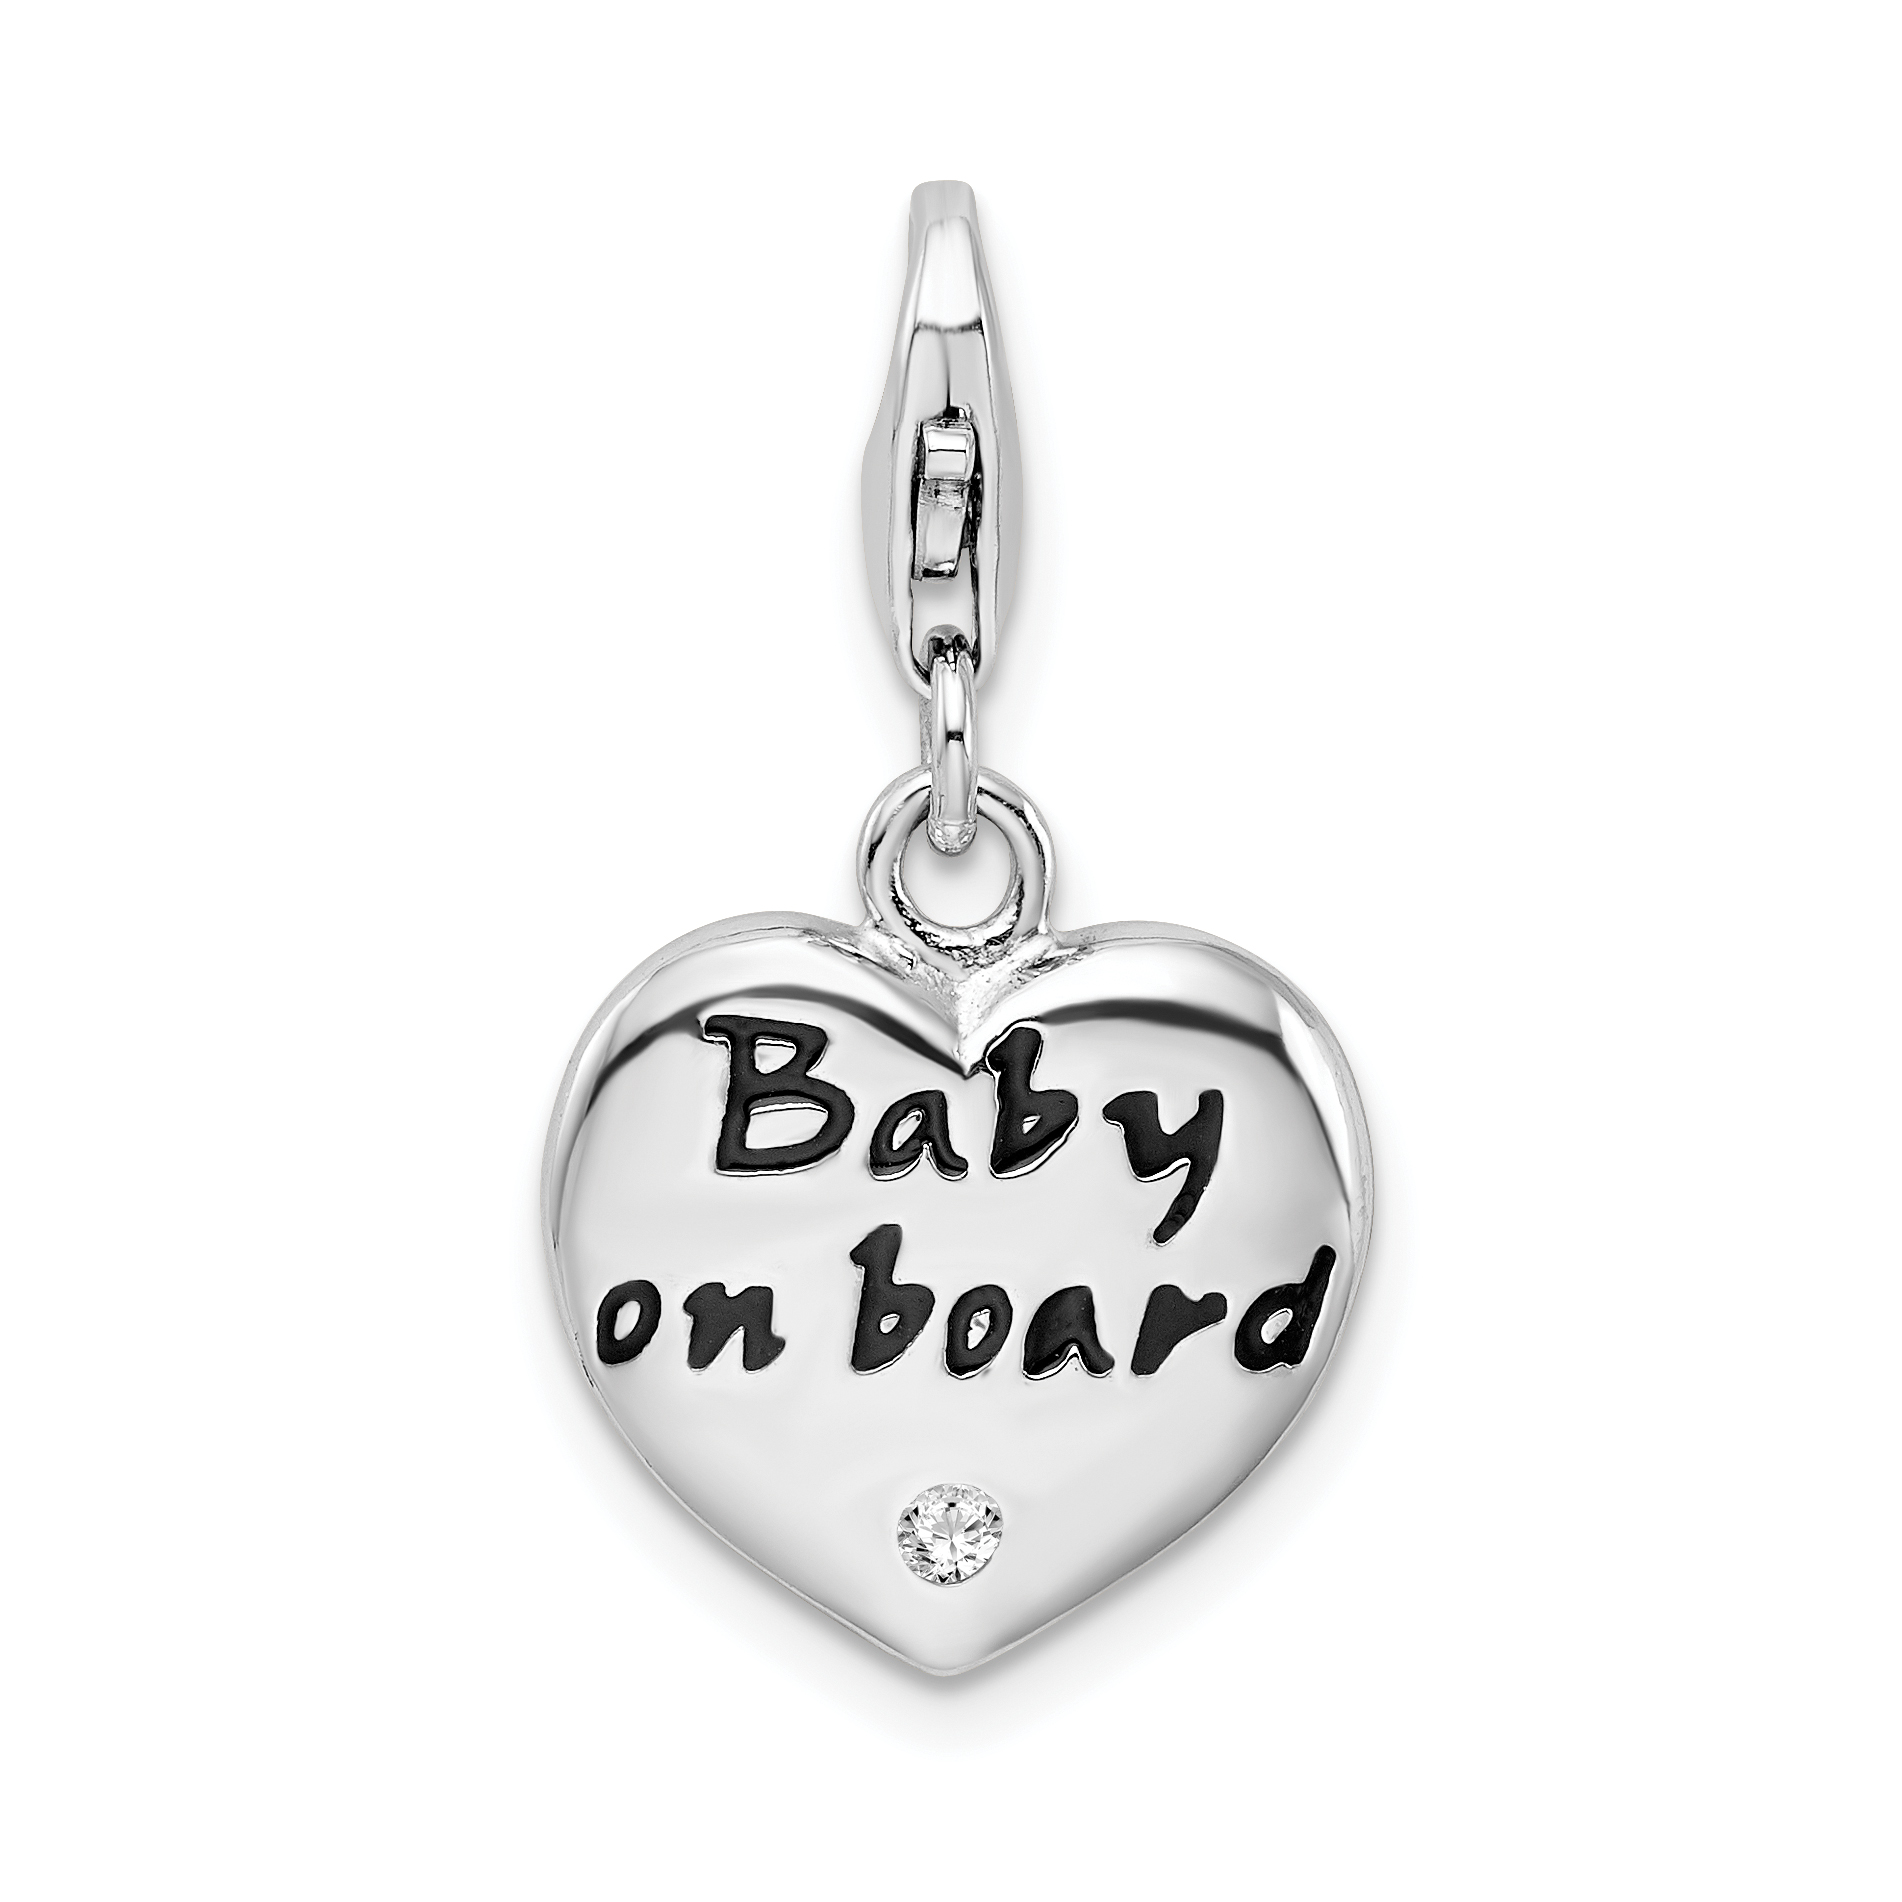 0.7in With Traditional Methods Sterling Silver 3-d Enameled Anchorwith Lobster Clasp Charm